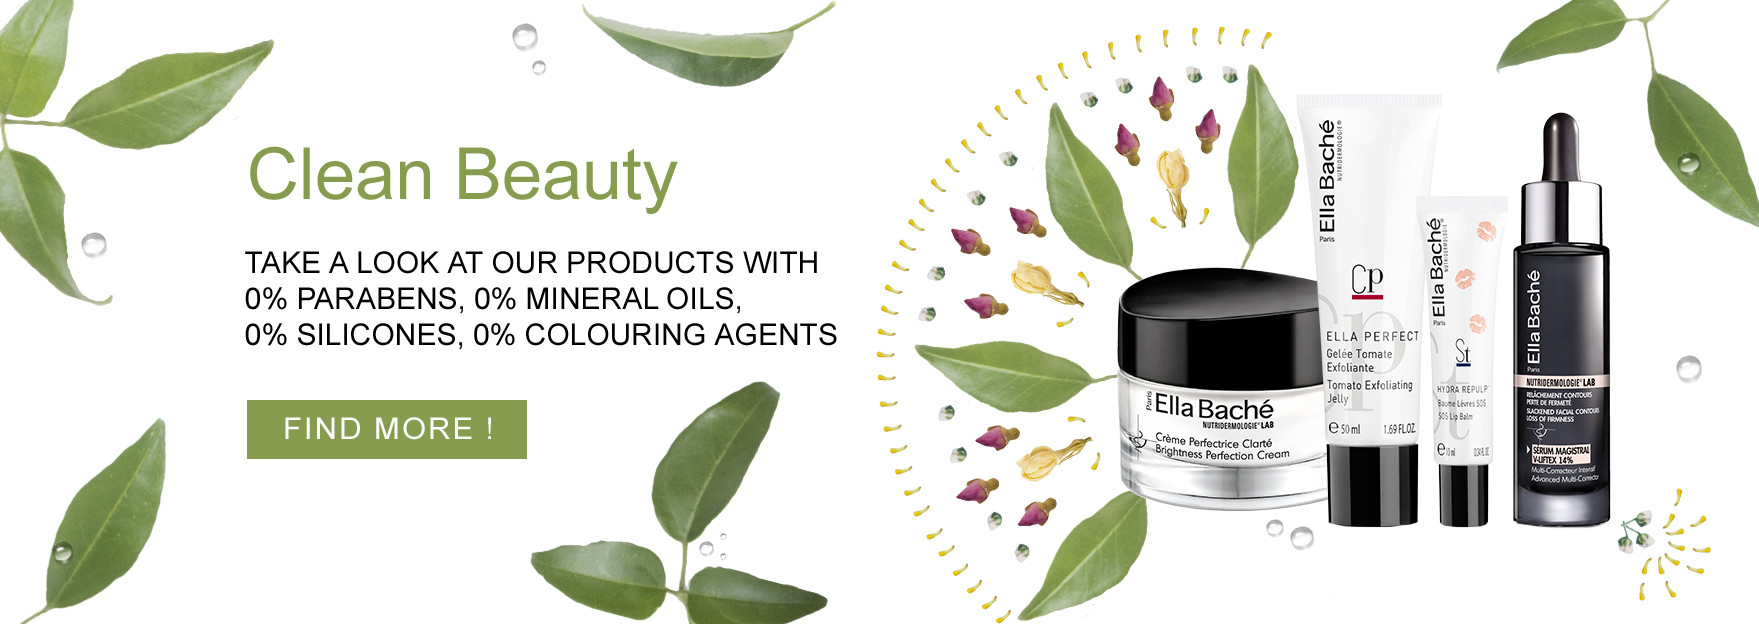 Clean Beauty : discover the Ella Baché products with 0% parabens, 0% mineral oils, 0% silicones, 0% colouring agents